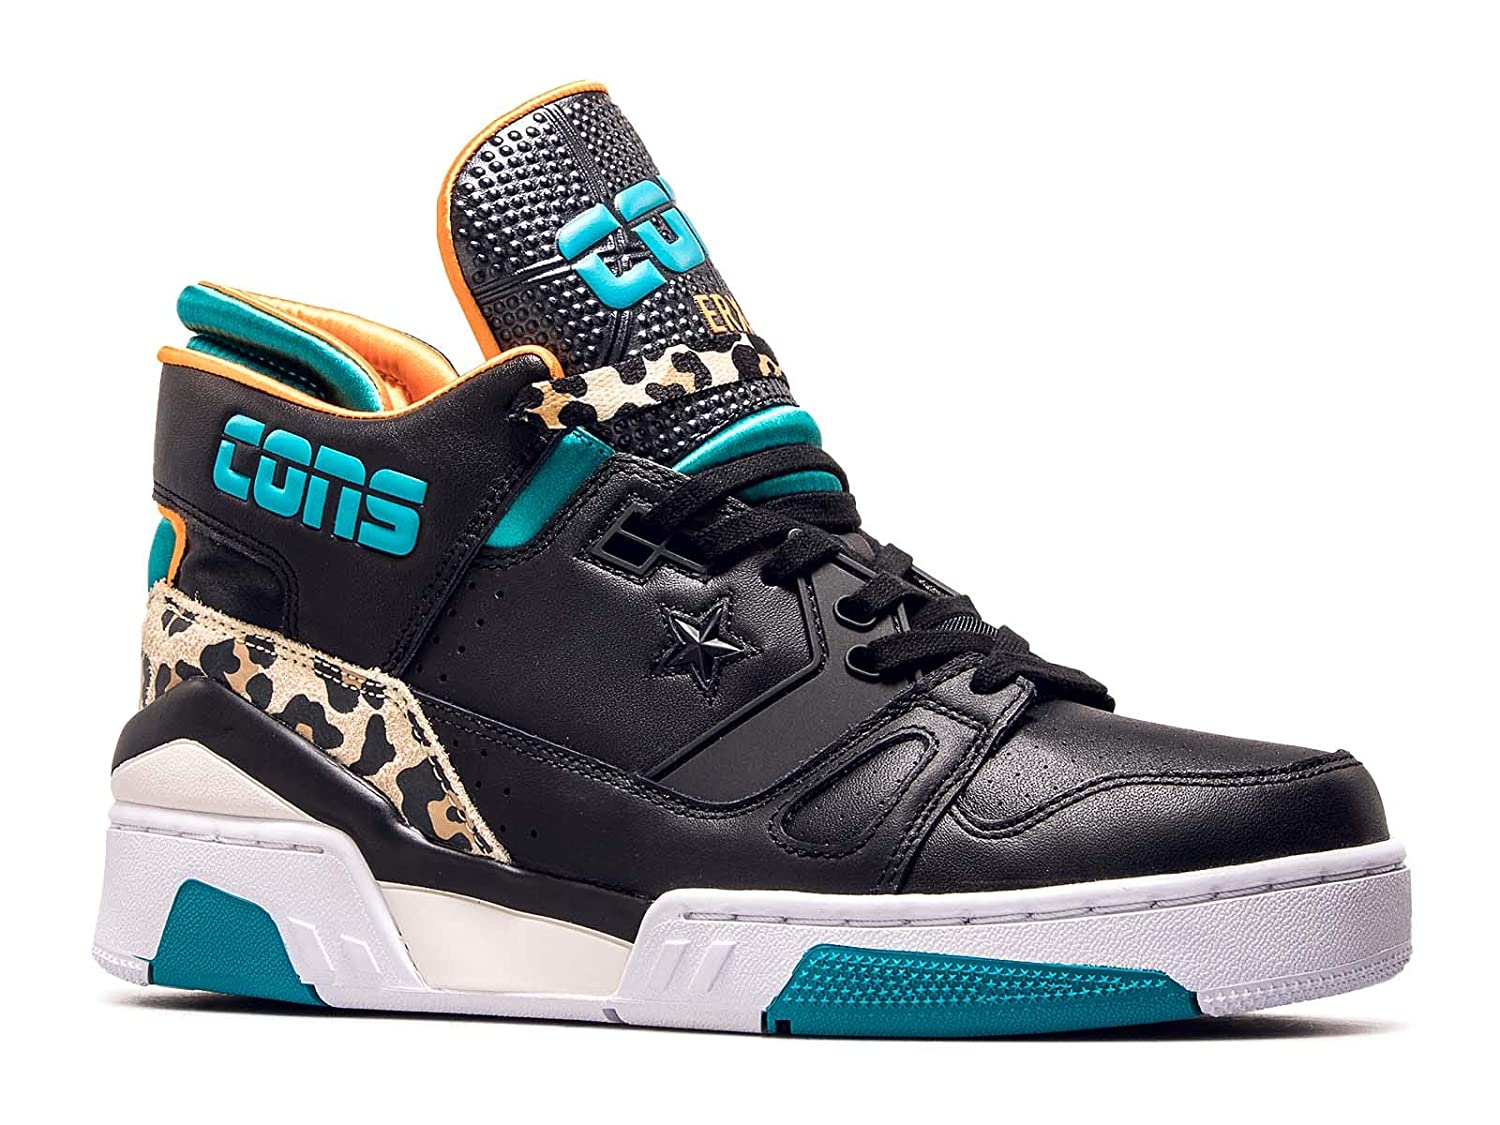 Converse ERX 260 Mid schwarz Teal Orange